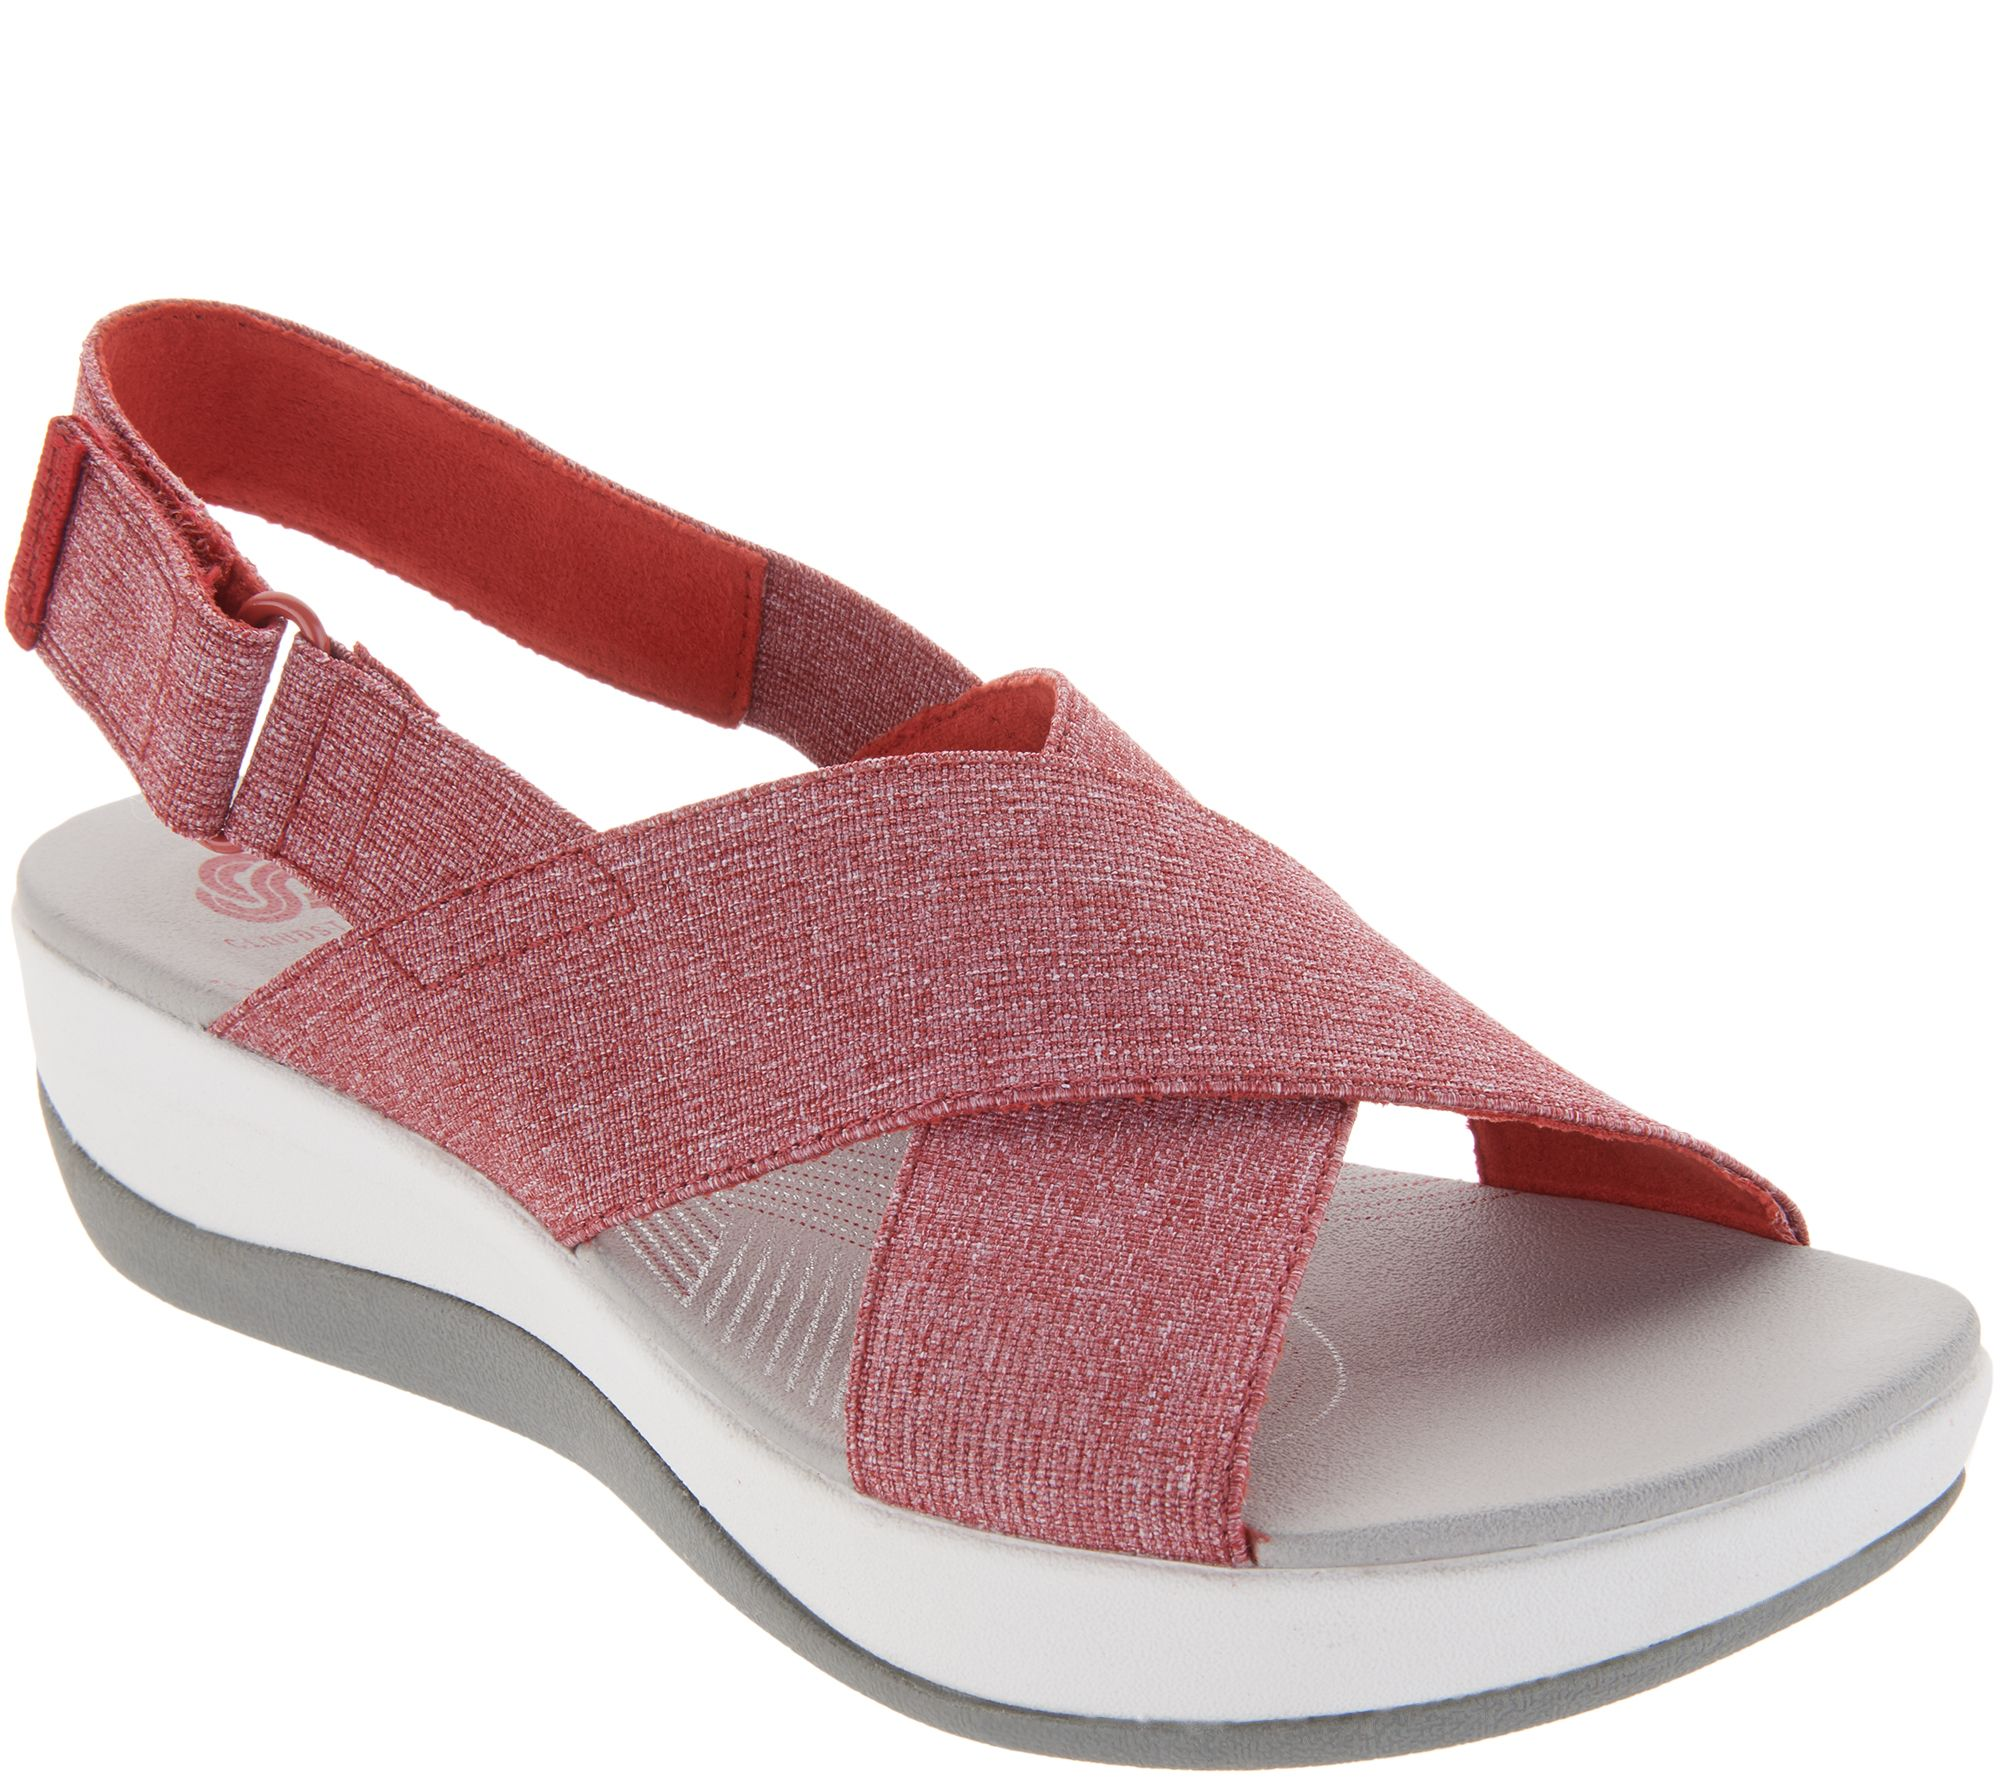 c66a316390e CLOUDSTEPPERS by Clarks Adjustable Sandals - Arla Kaydin - Page 1 — QVC.com